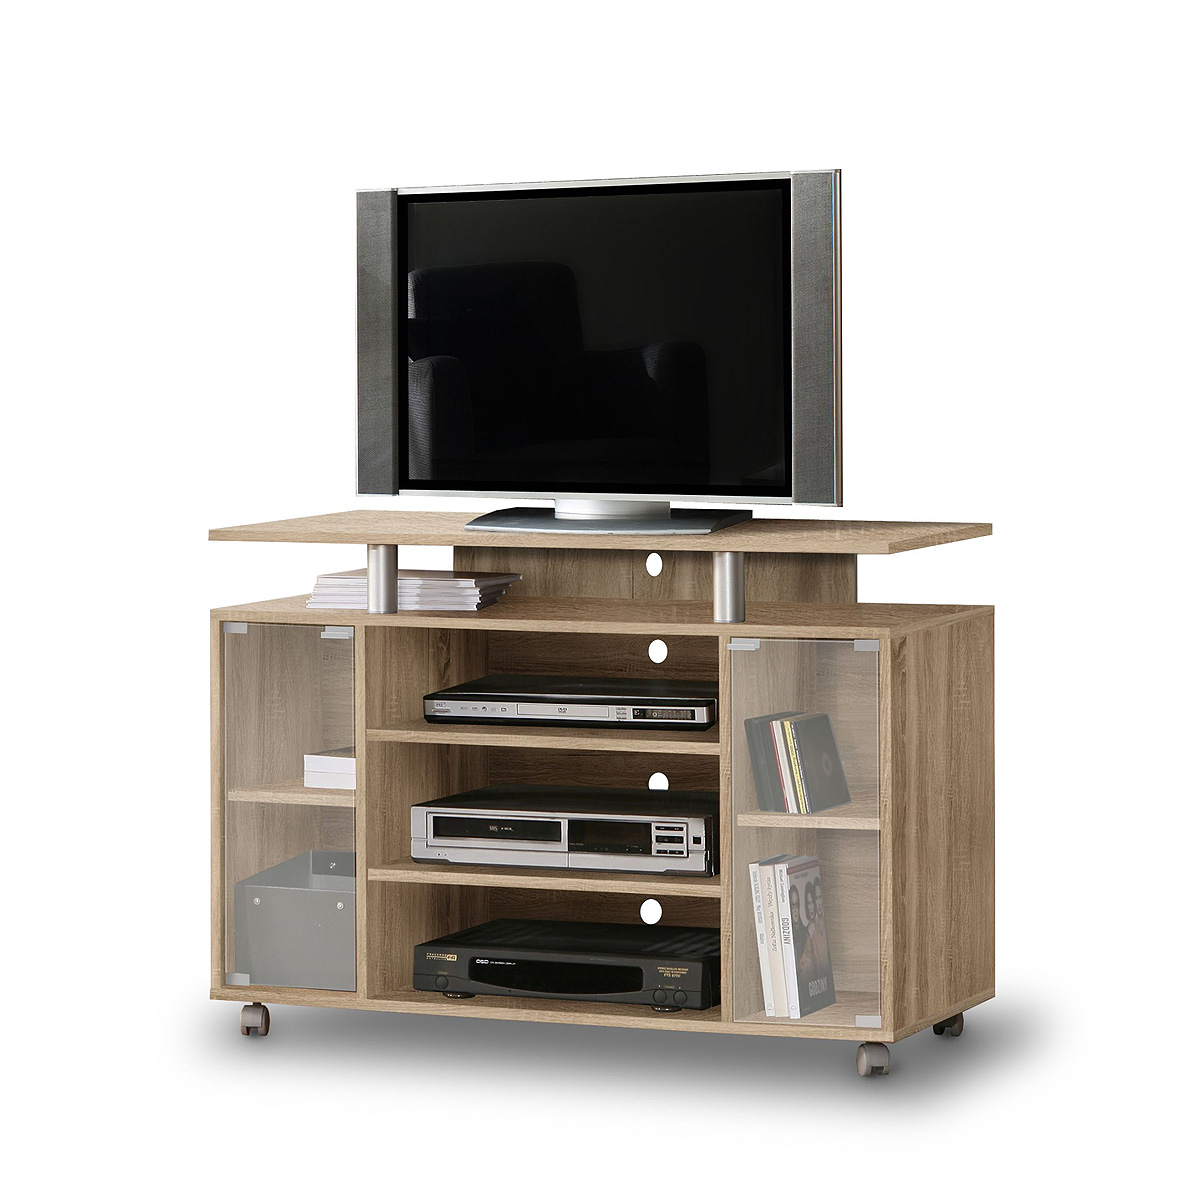 tv kommode selber bauen die neueste innovation der. Black Bedroom Furniture Sets. Home Design Ideas